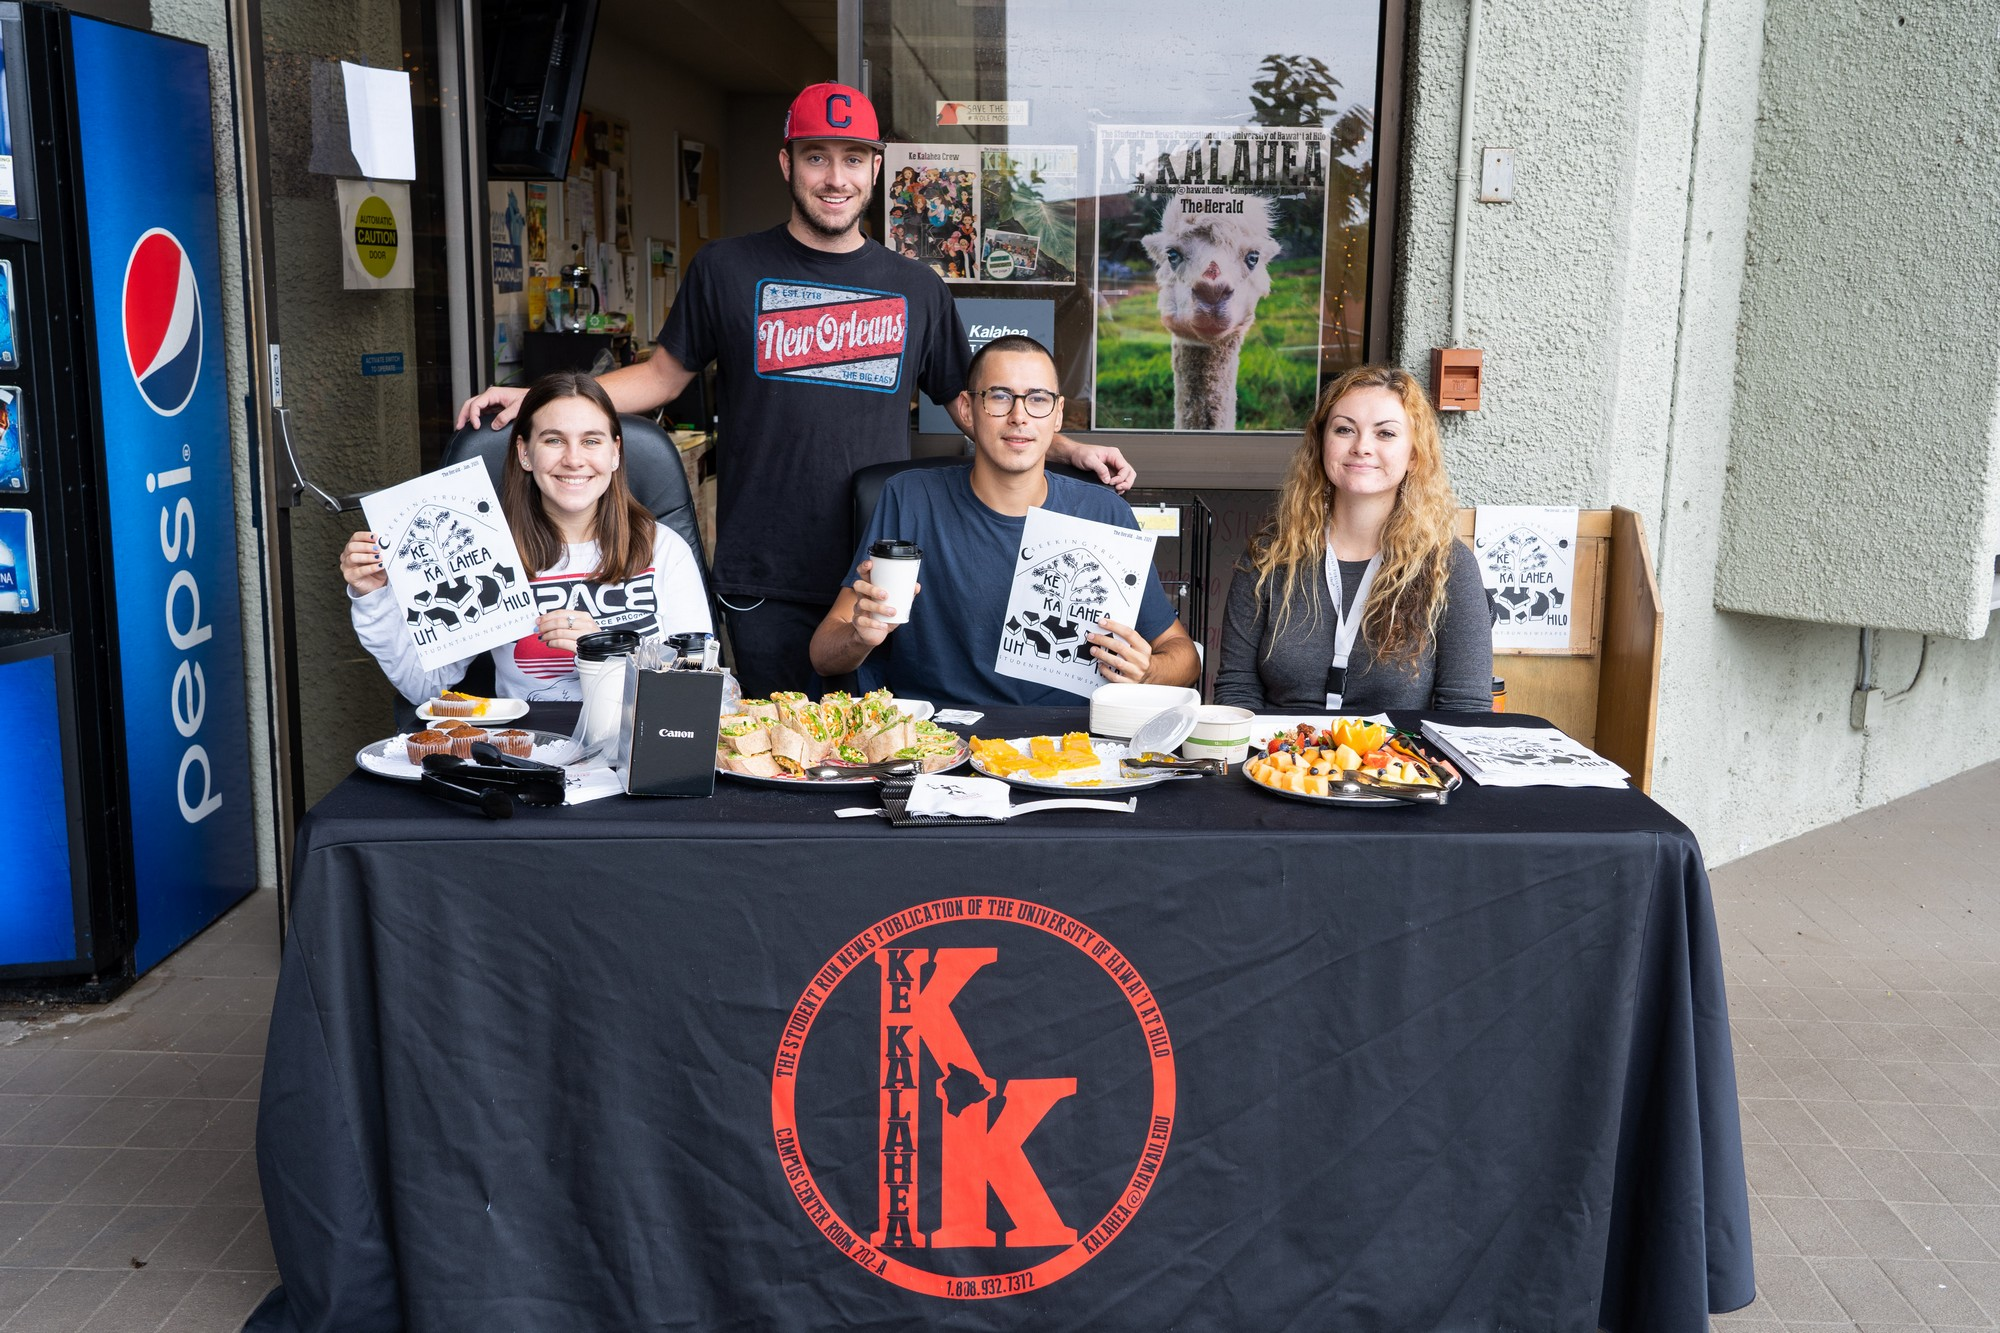 Ke Kalahea staff sit at a table with information leaflets and some food giveaways. The table is covered in a black cloth with Ke Kalahea logo in red.